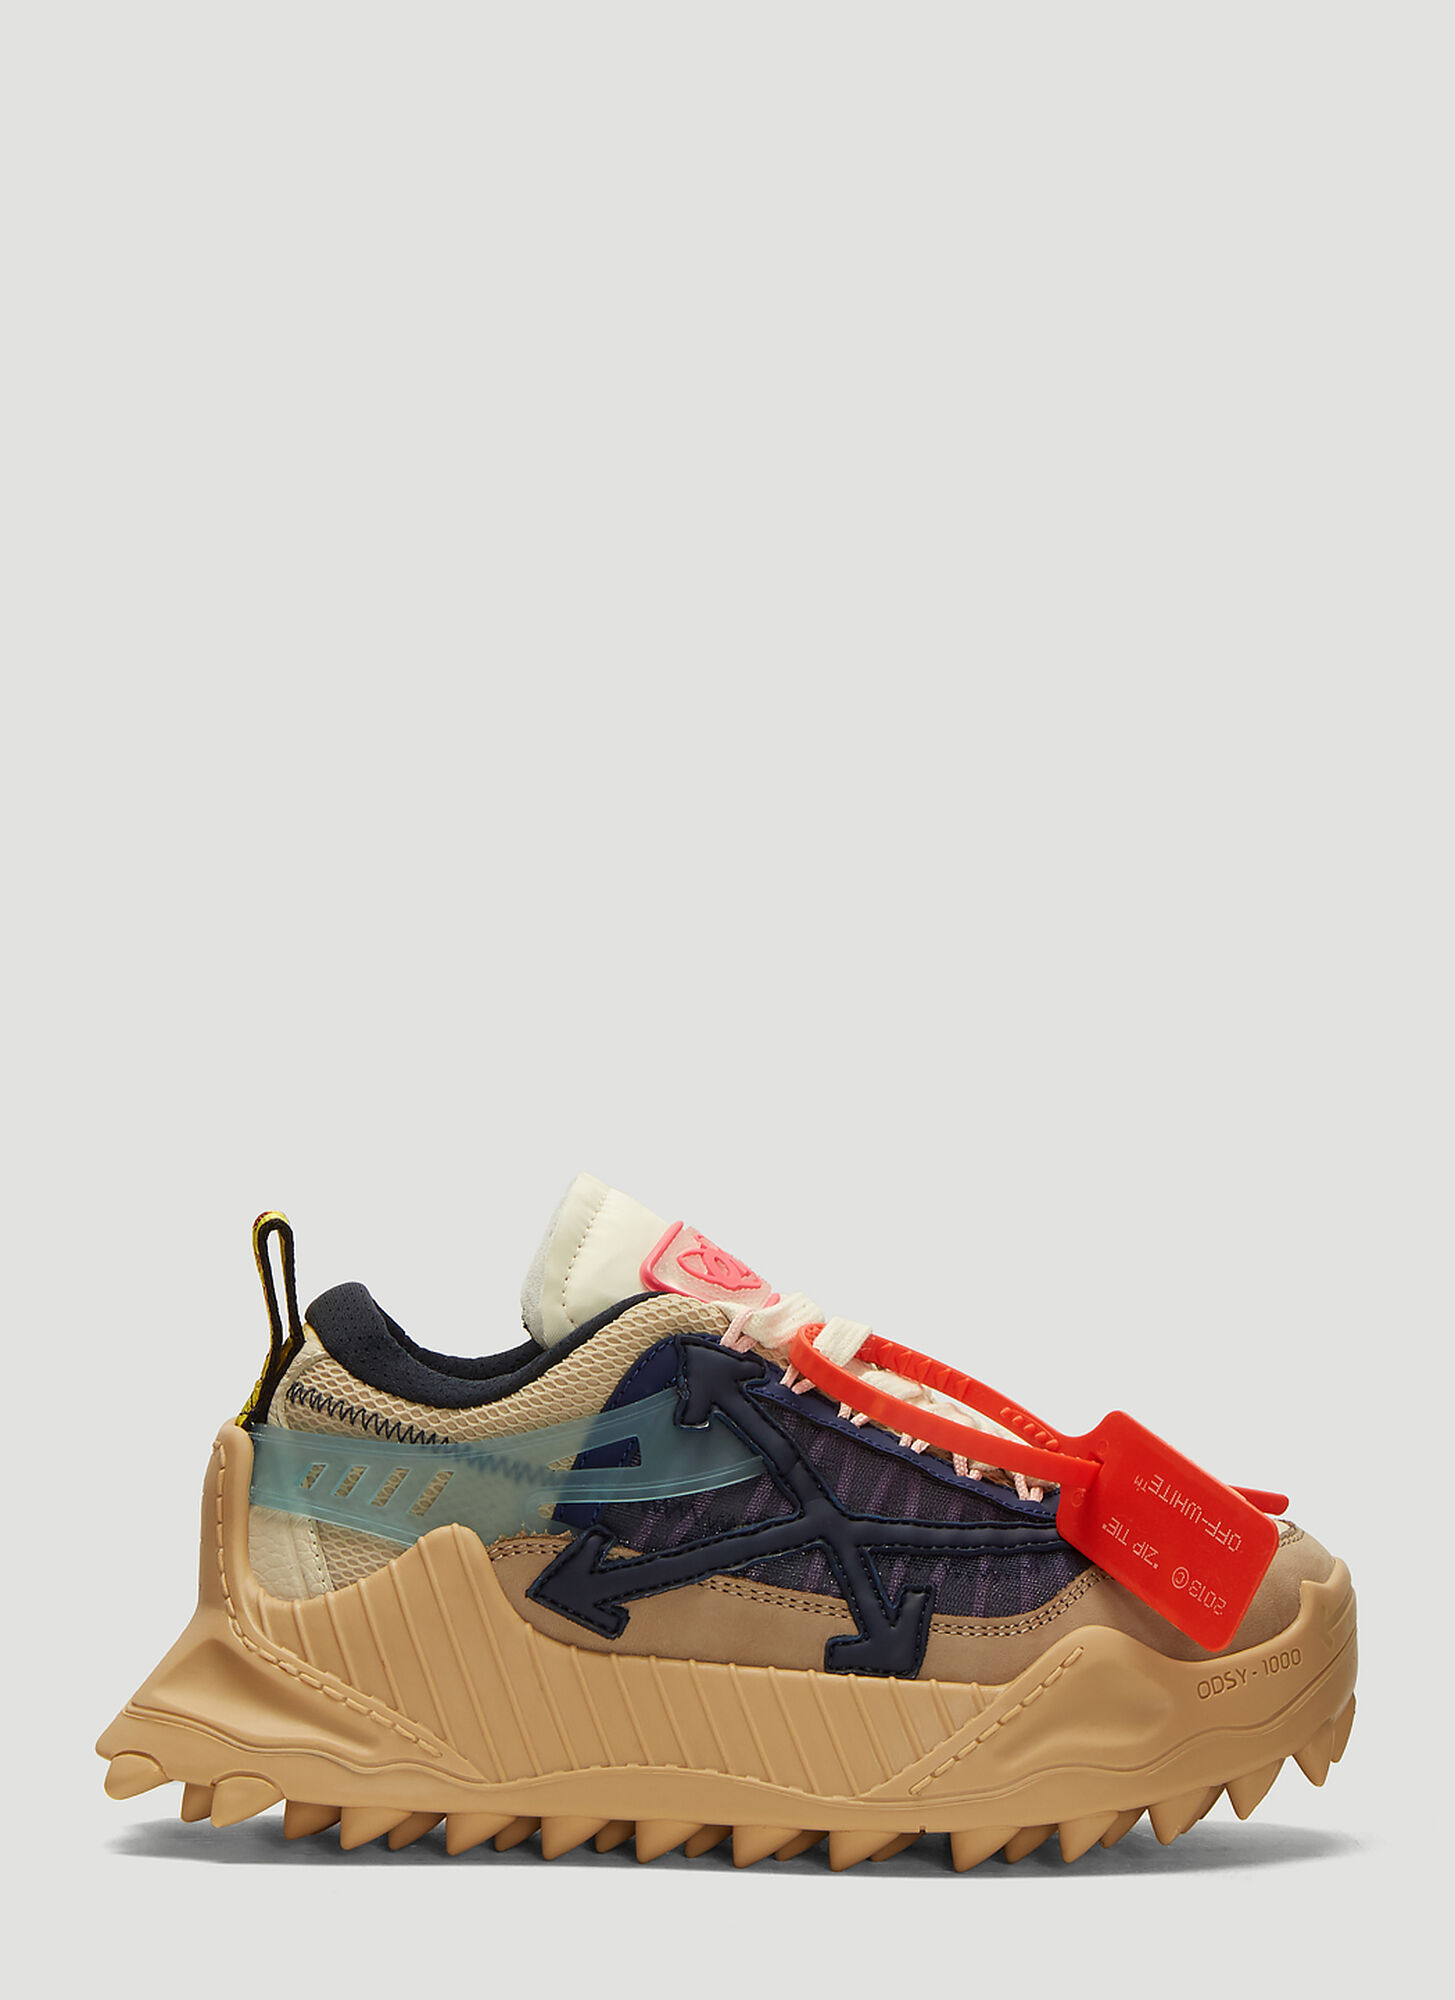 Off-White Odsy-1000 Sneakers in Beige